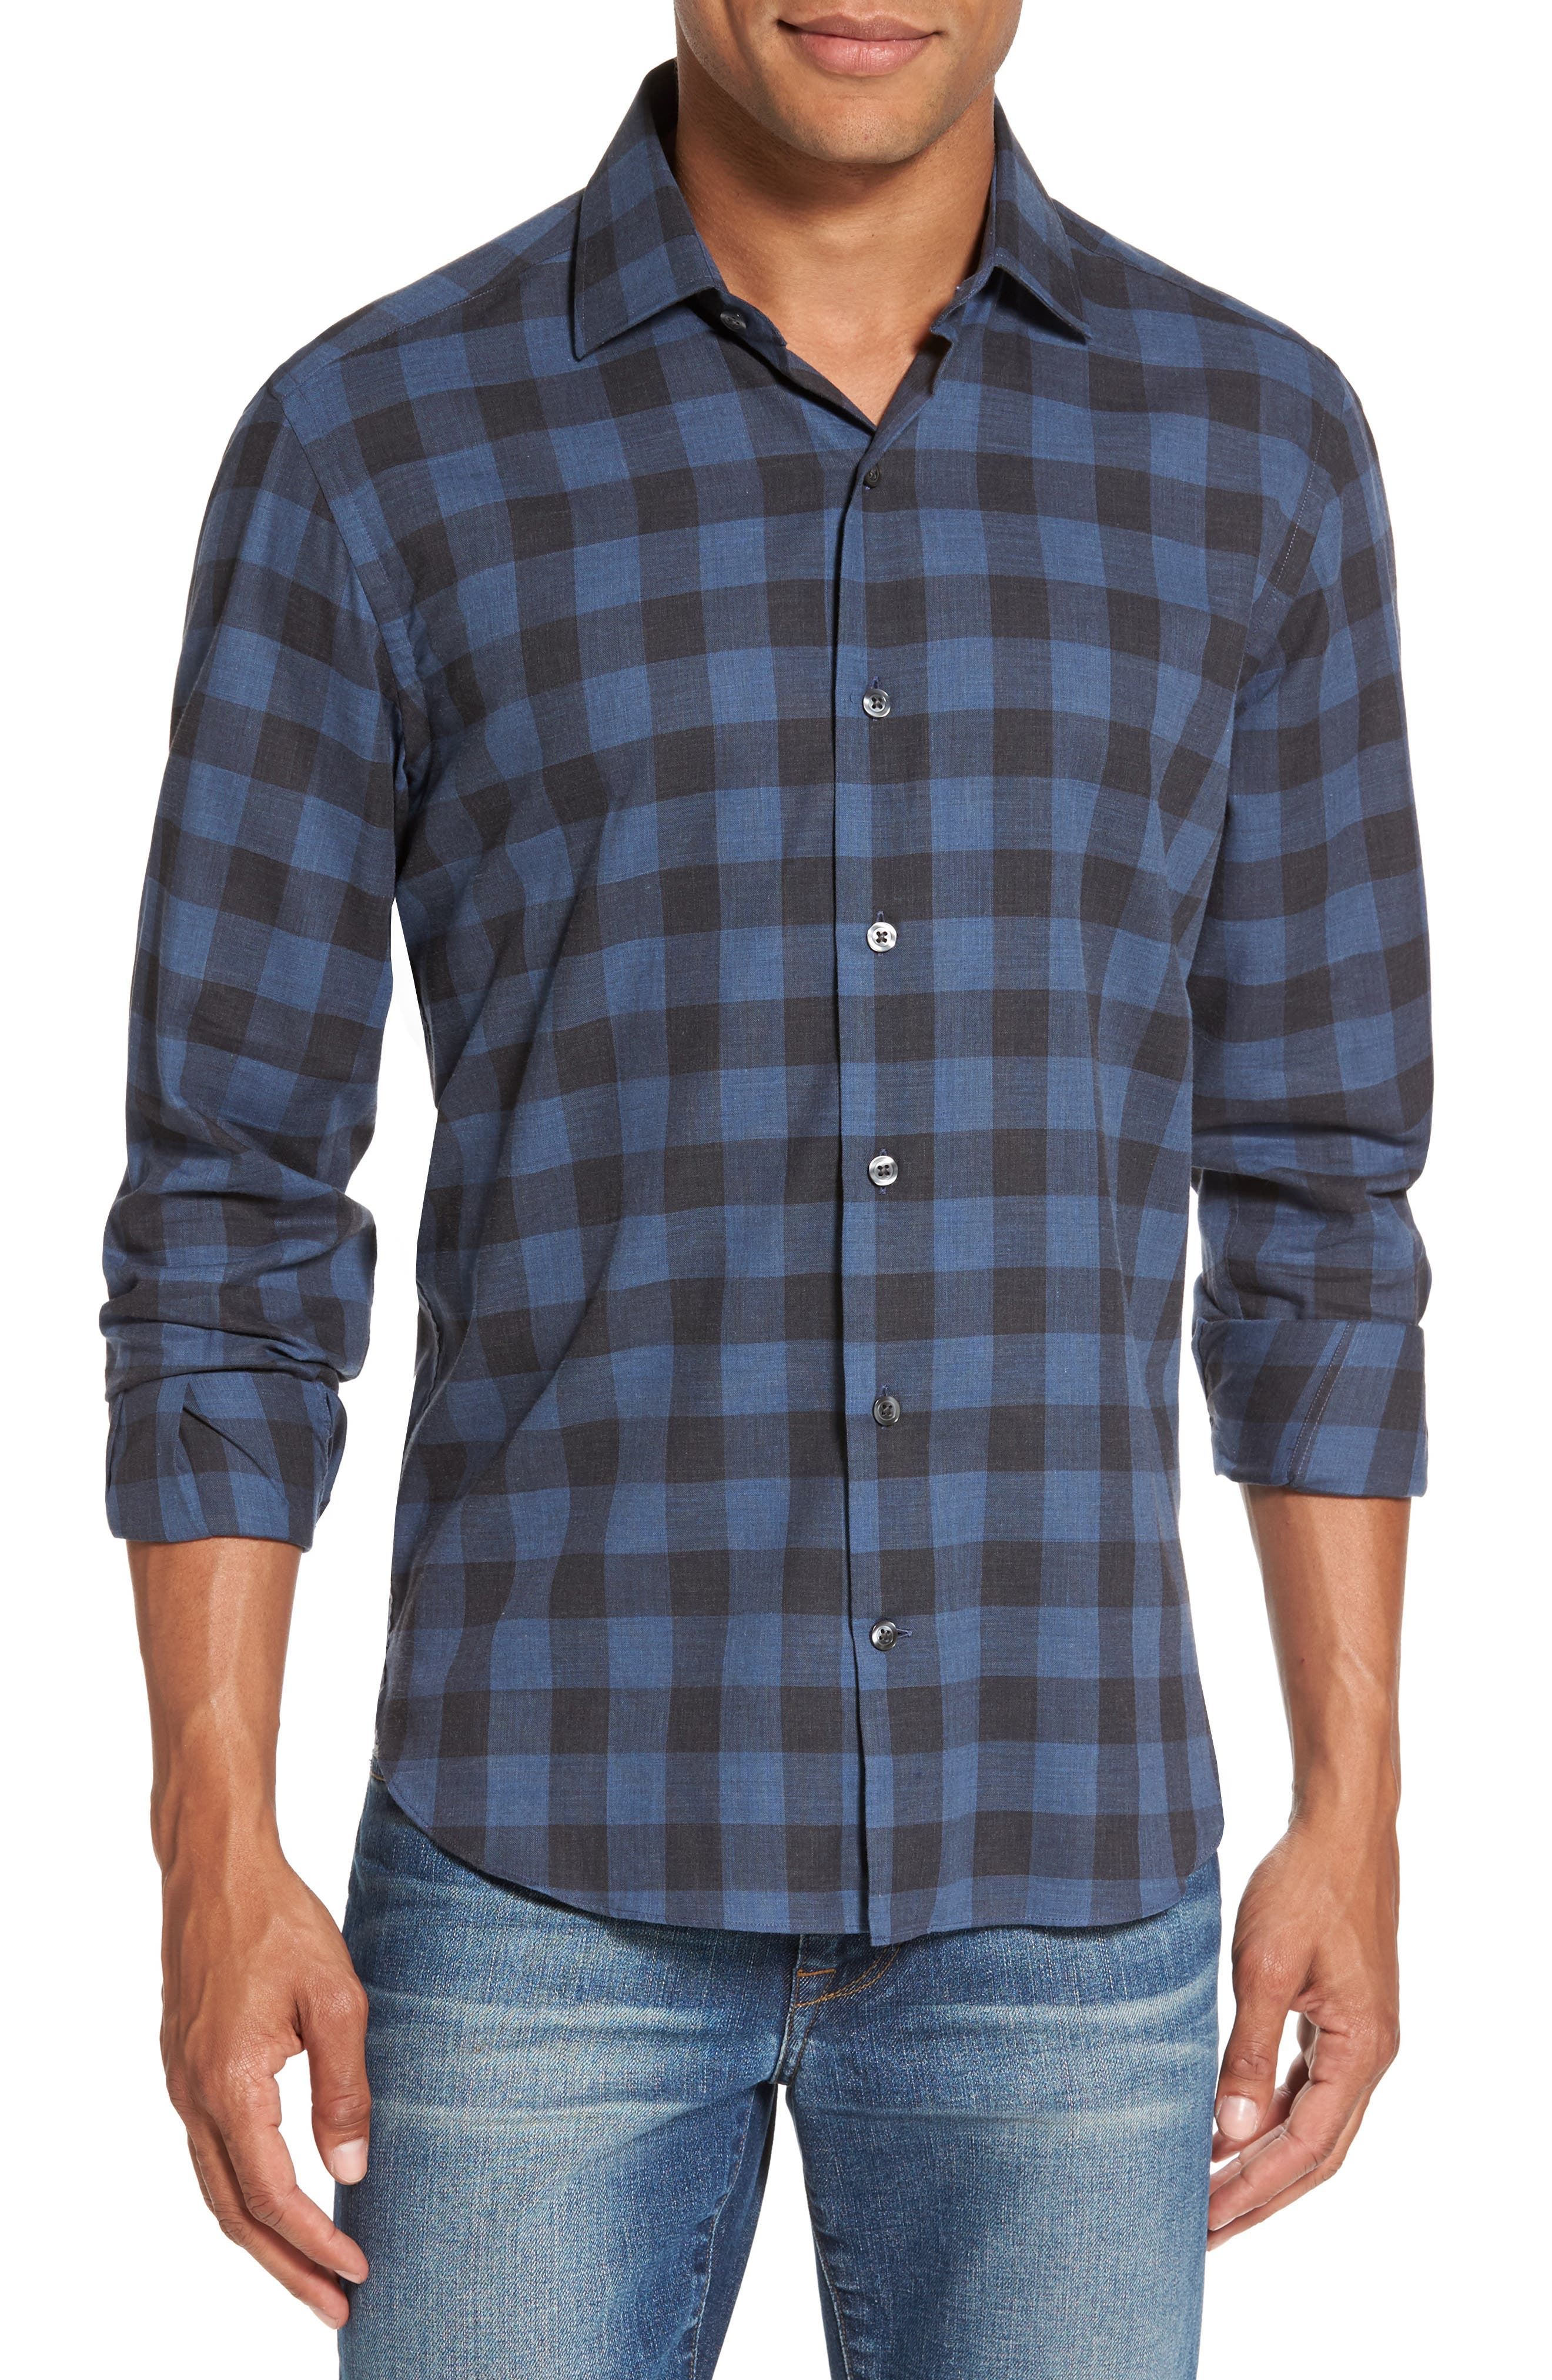 Alternate Image 1 Selected - Culturata Trim Fit Buffalo Check Sport Shirt